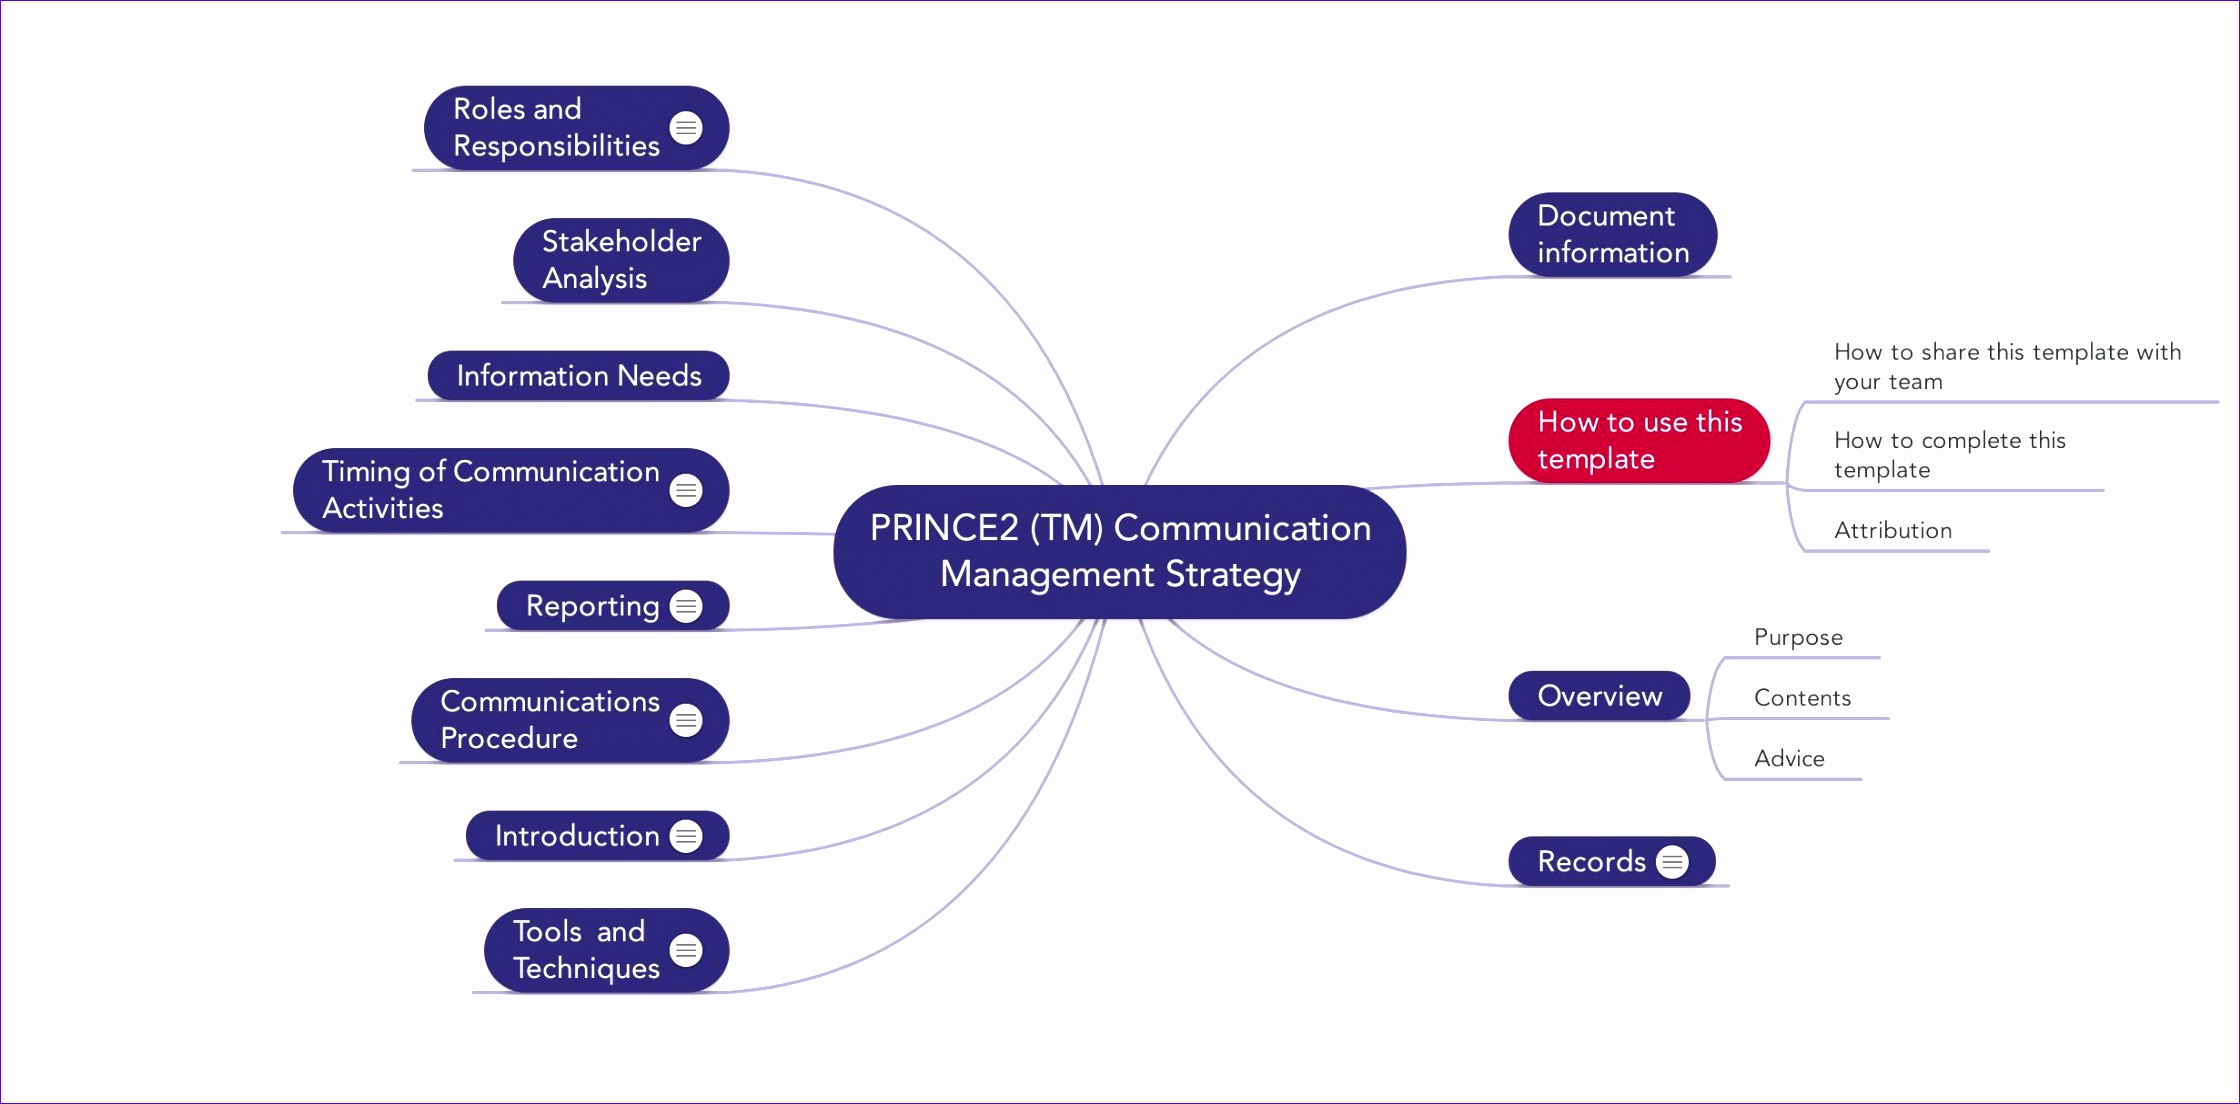 PRINCE2 TM munication Management Strategy